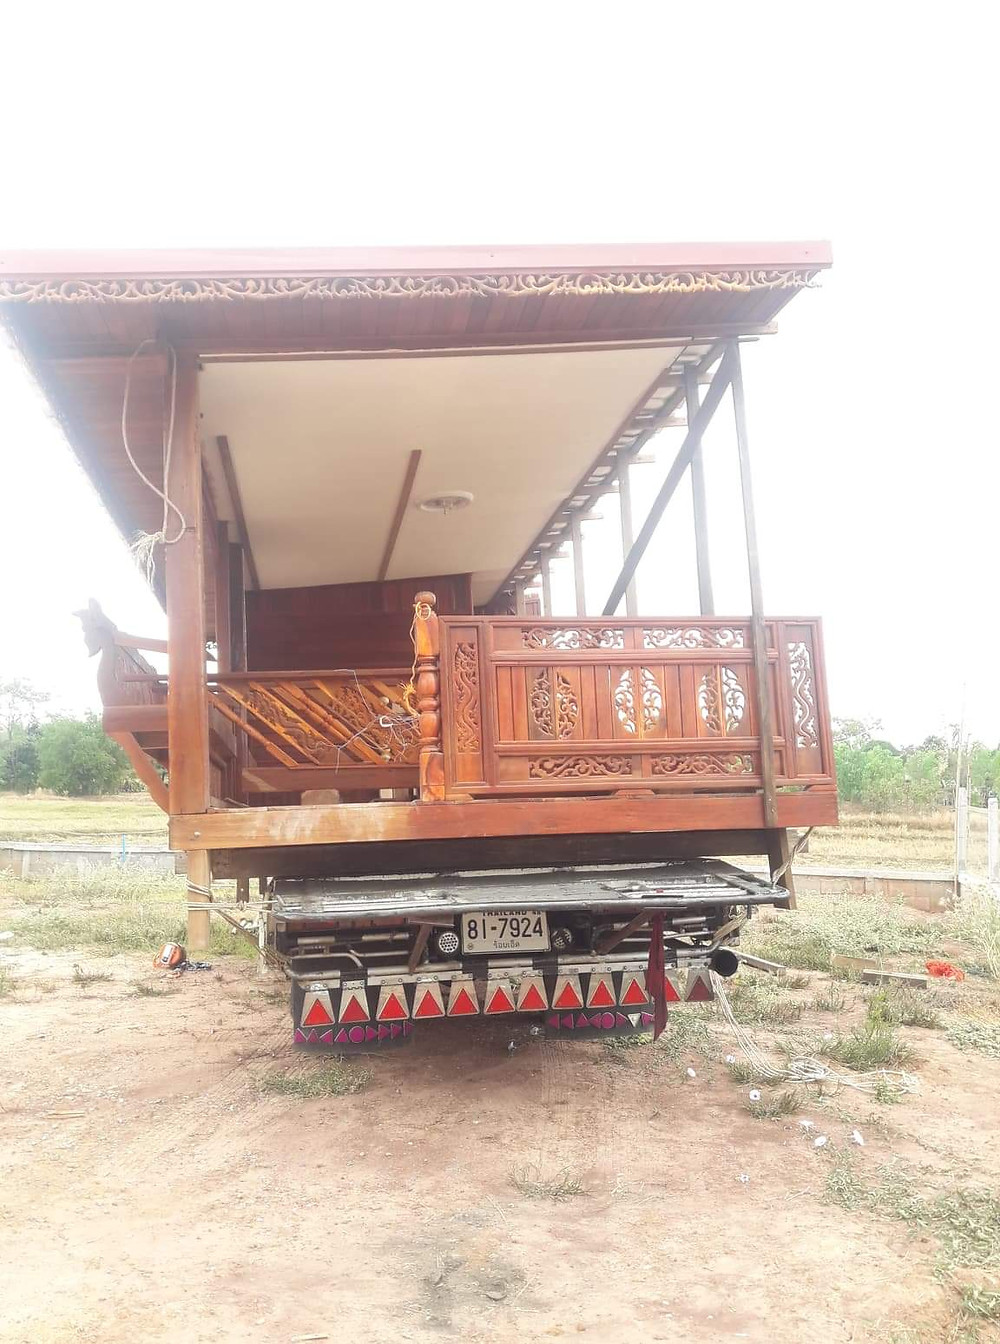 Traditional wooden thai house arriving on site on the back of a truck